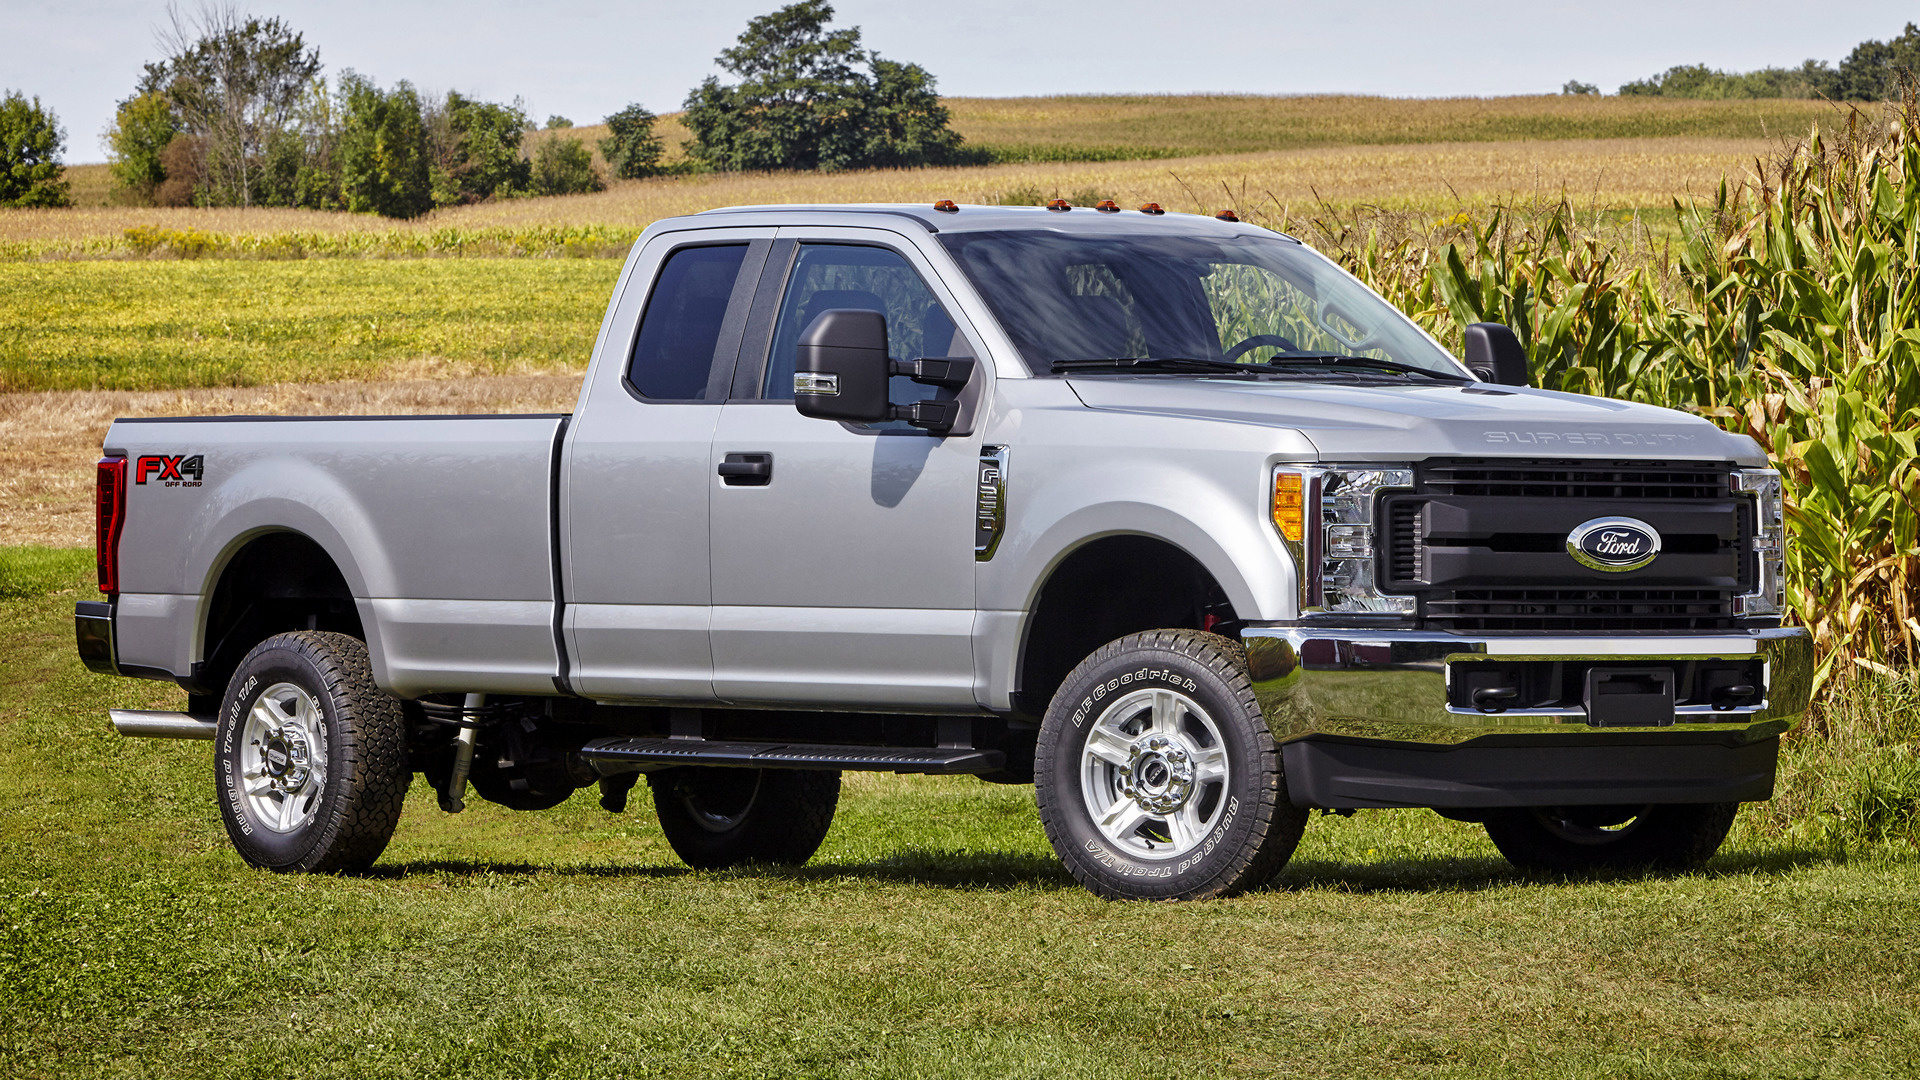 Ford F-250 XL FX4 Super Cab (2017) Wallpapers and HD Images - Car ...